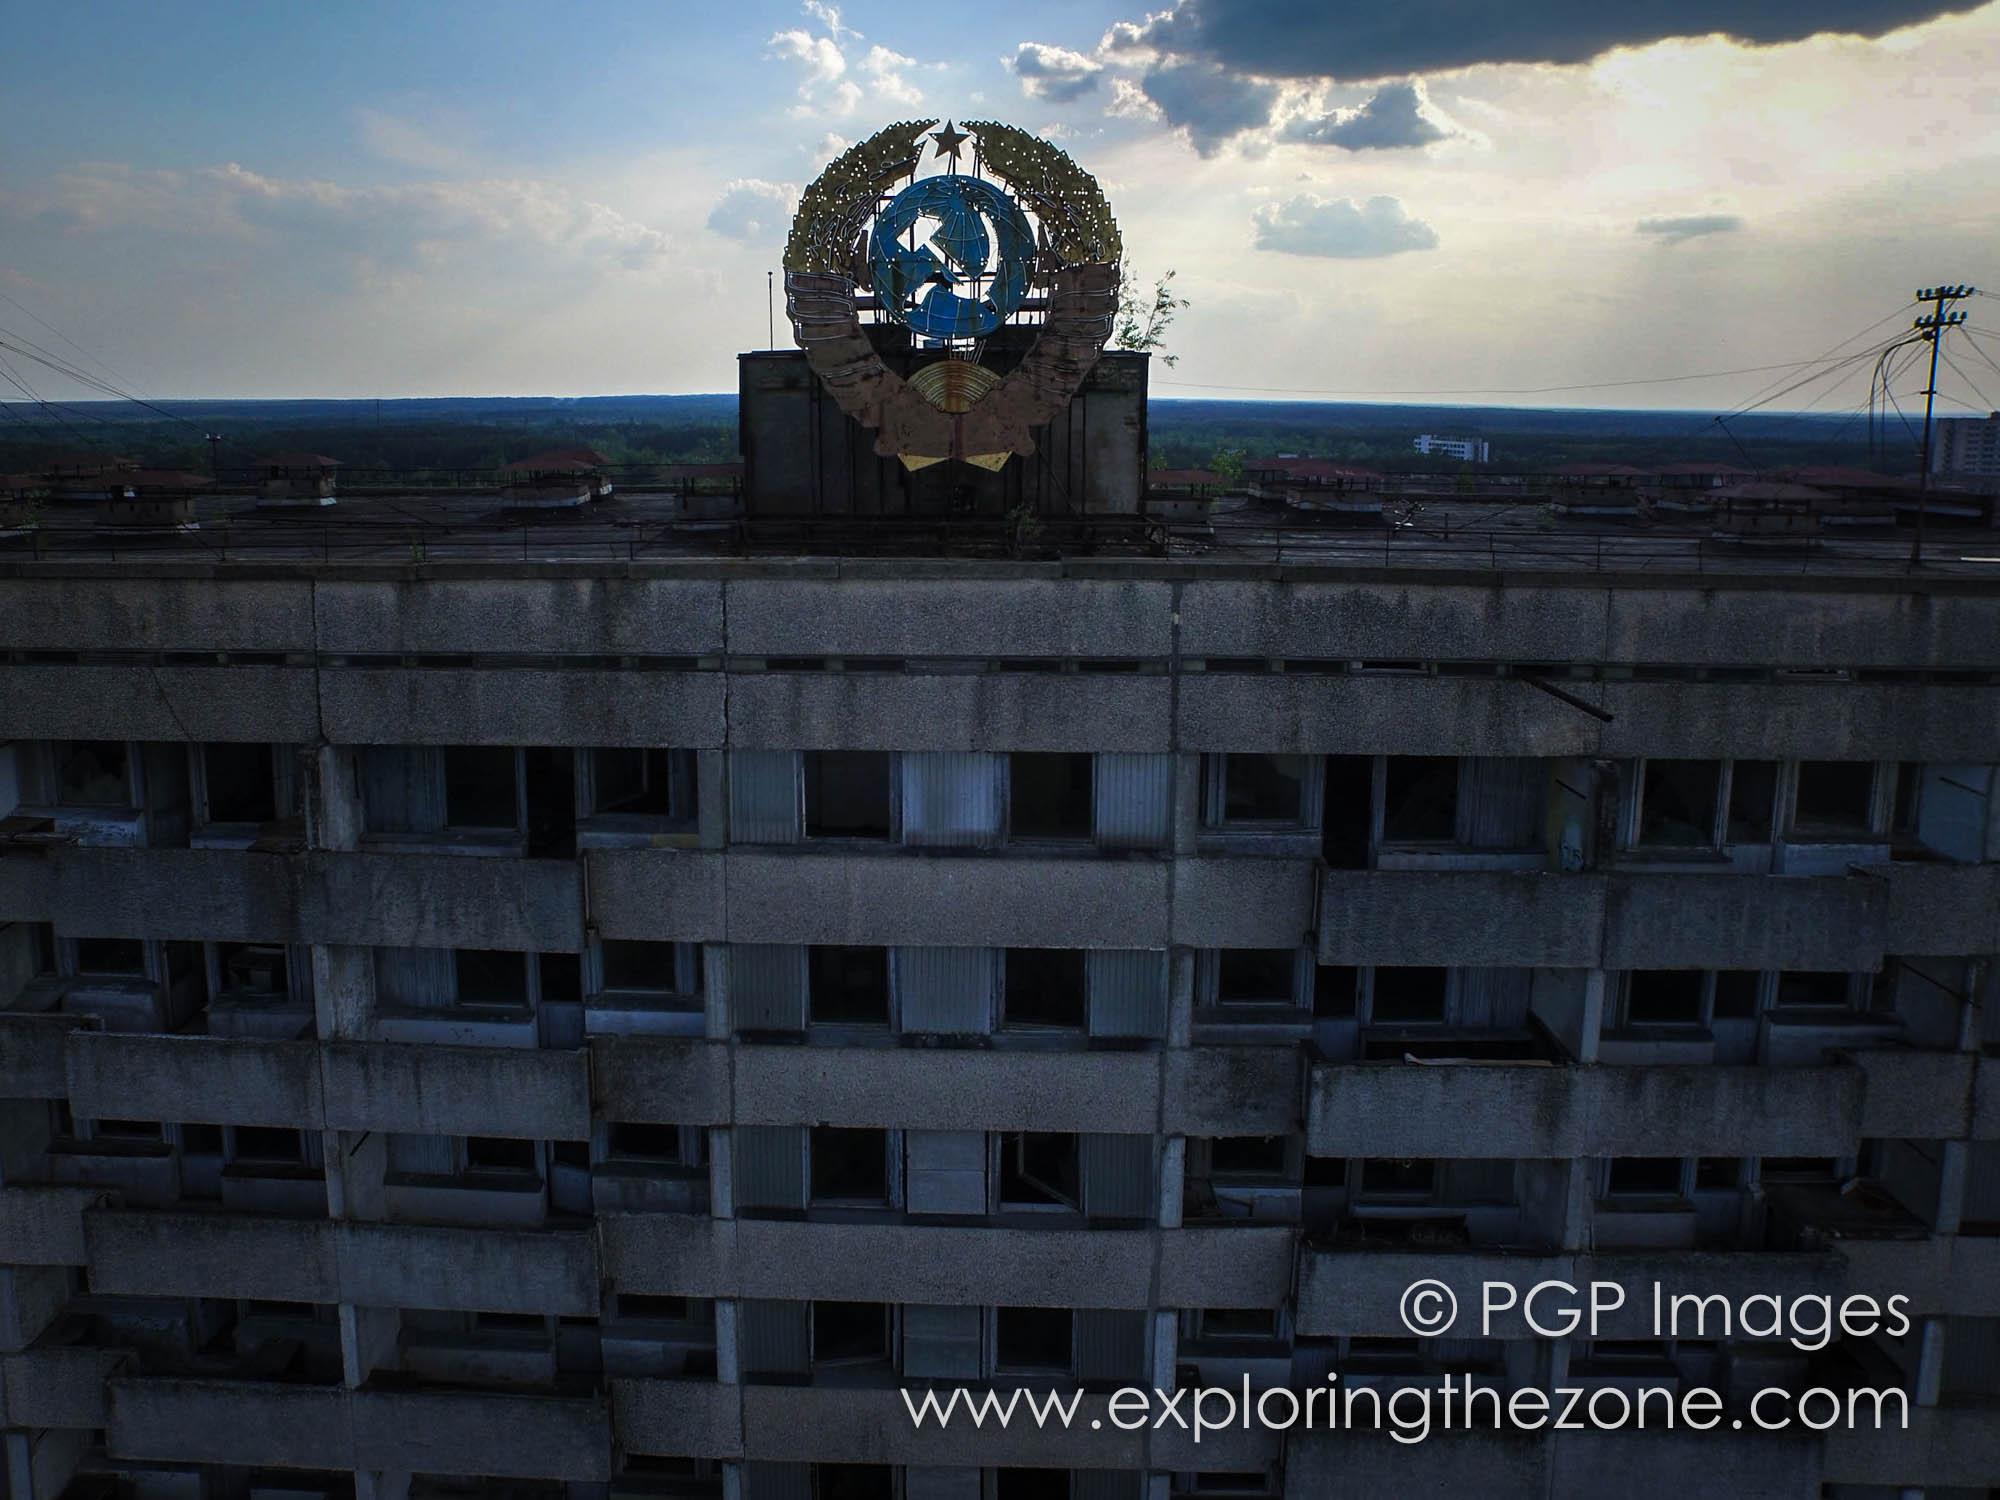 Review: Flying DJI's Inspire 1 in the Chernobyl Nuclear